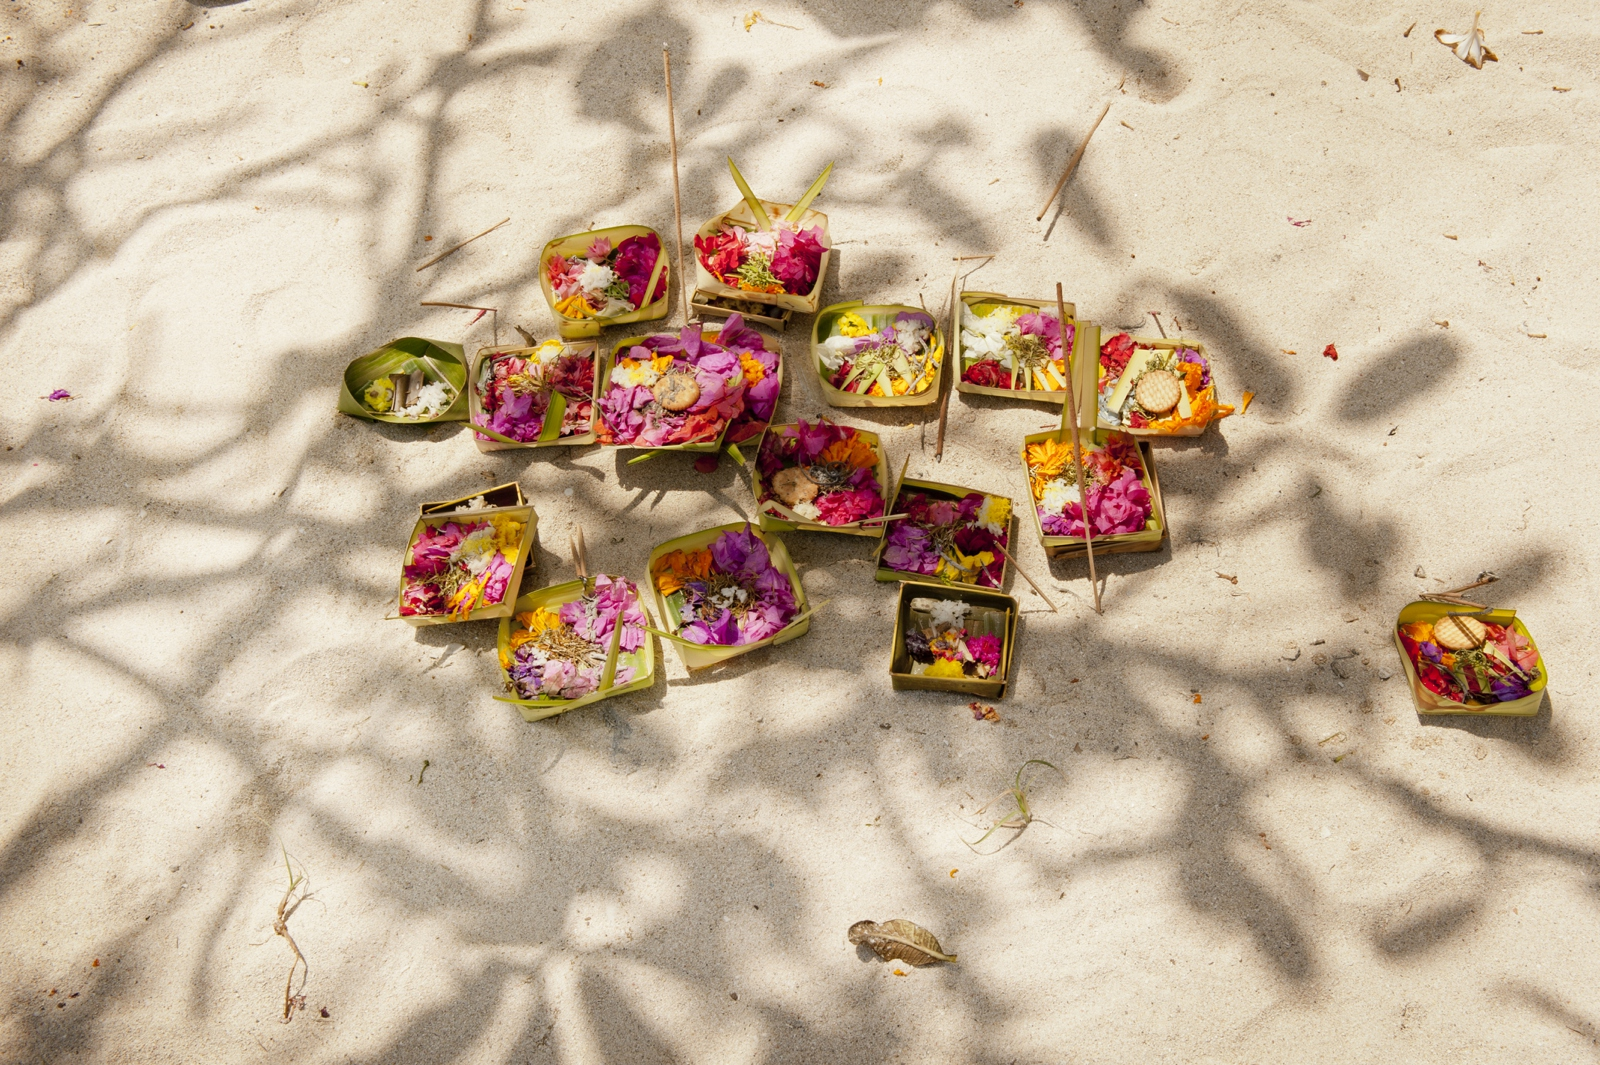 Balinese offerings with frangipani shadow